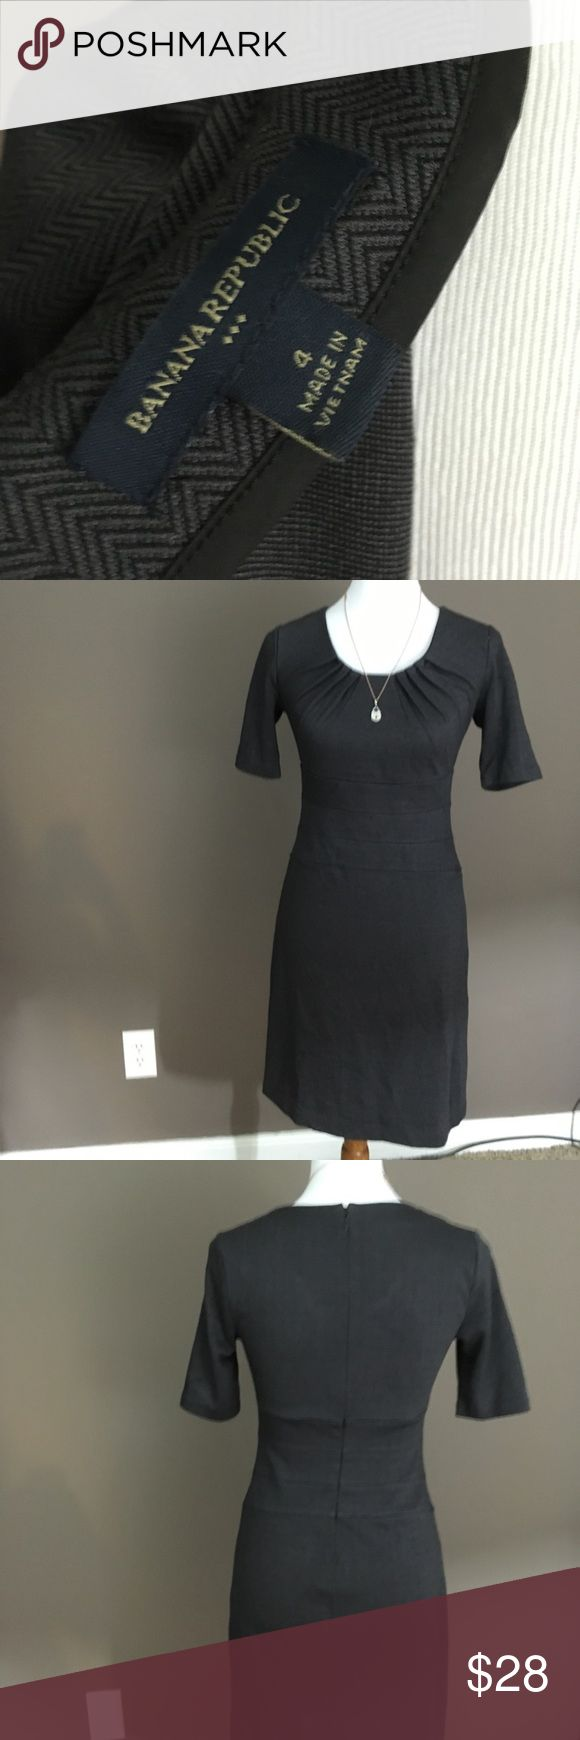 """Banana Republic Hot Secretary Dress Sophisticated BR dress - great for work or a special night out.  Grey background with a delicate black herring bone detail.  Waist detail makes the dress incredibly flattering.  Zippered back, partially lined.  Condition: Perfect, preworn condition.  Only worn once!  Measurements: Length from neck to hem: 35"""" Sleeve: 10 1/2"""" Bust: 14"""" Waist: ~27"""" round at smallest point  Fabric & Care: Body: 77% polyester 18% rayon 5% spandex Liner: 95% polyester 5%…"""